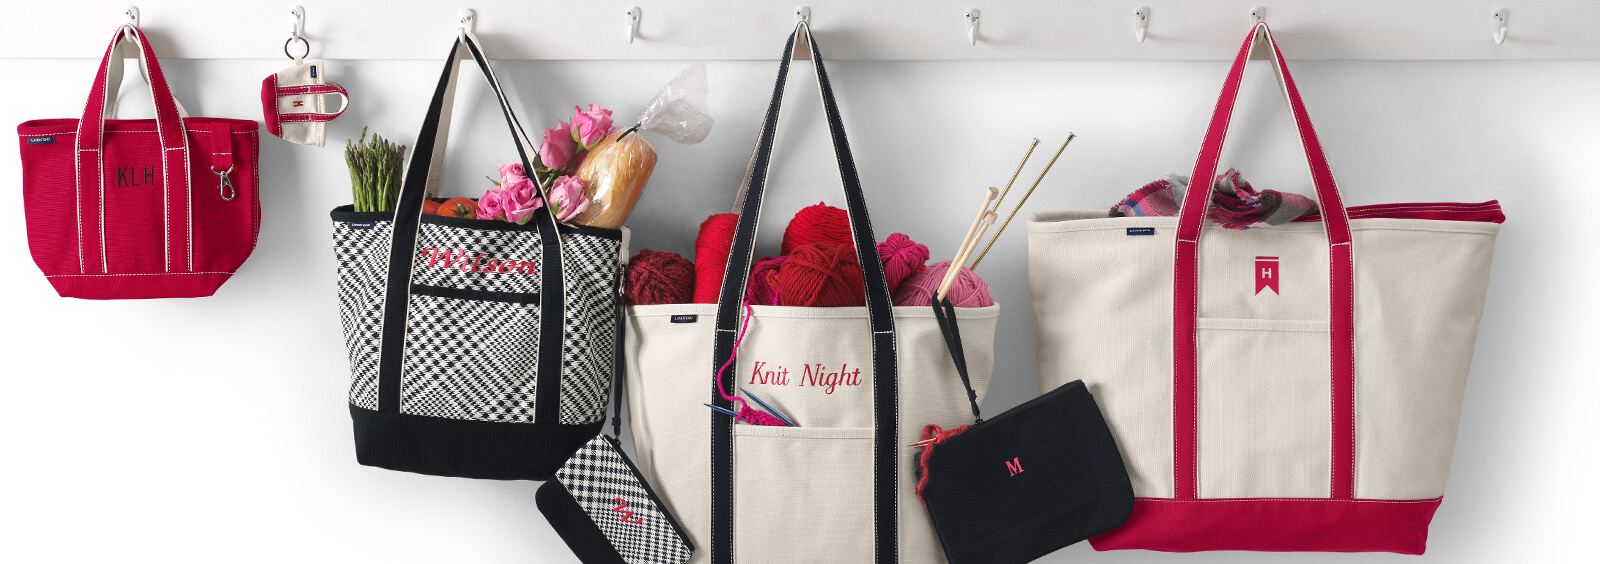 Monograms for Smart Packing | Lands' End